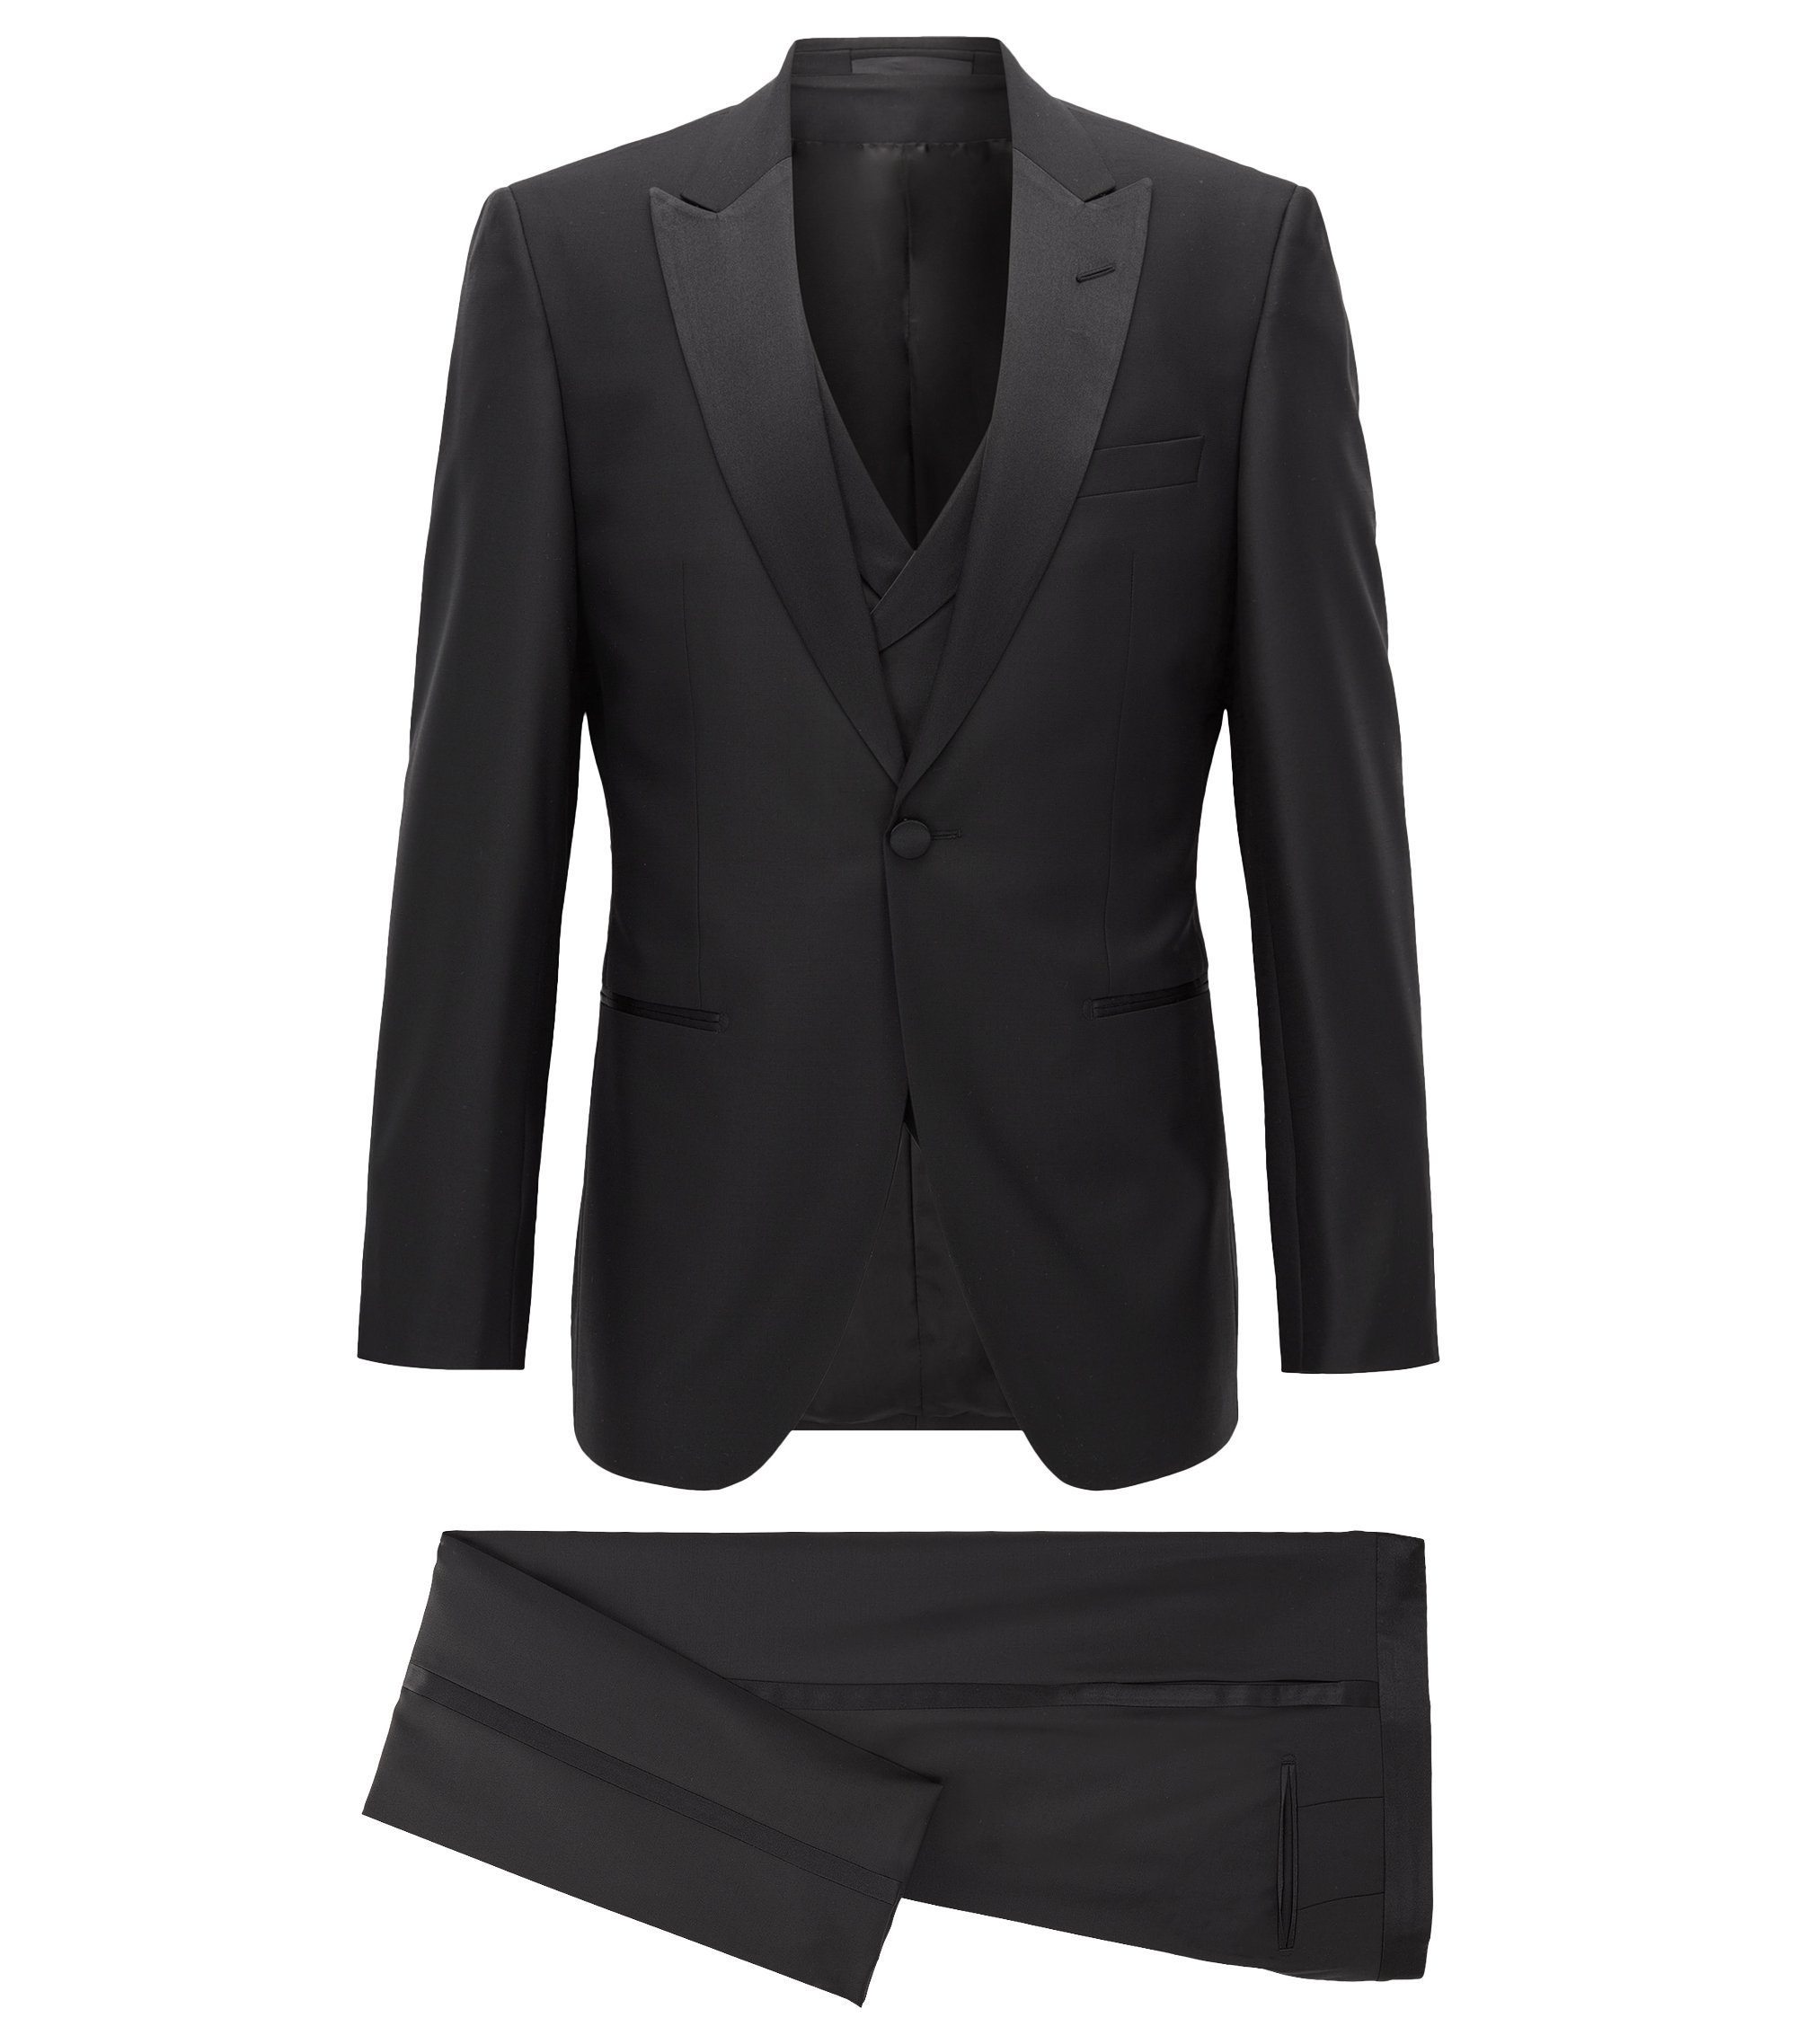 Italian Wool Tuxedo, Slim Fit | T-Hardon/Glore WE, Black